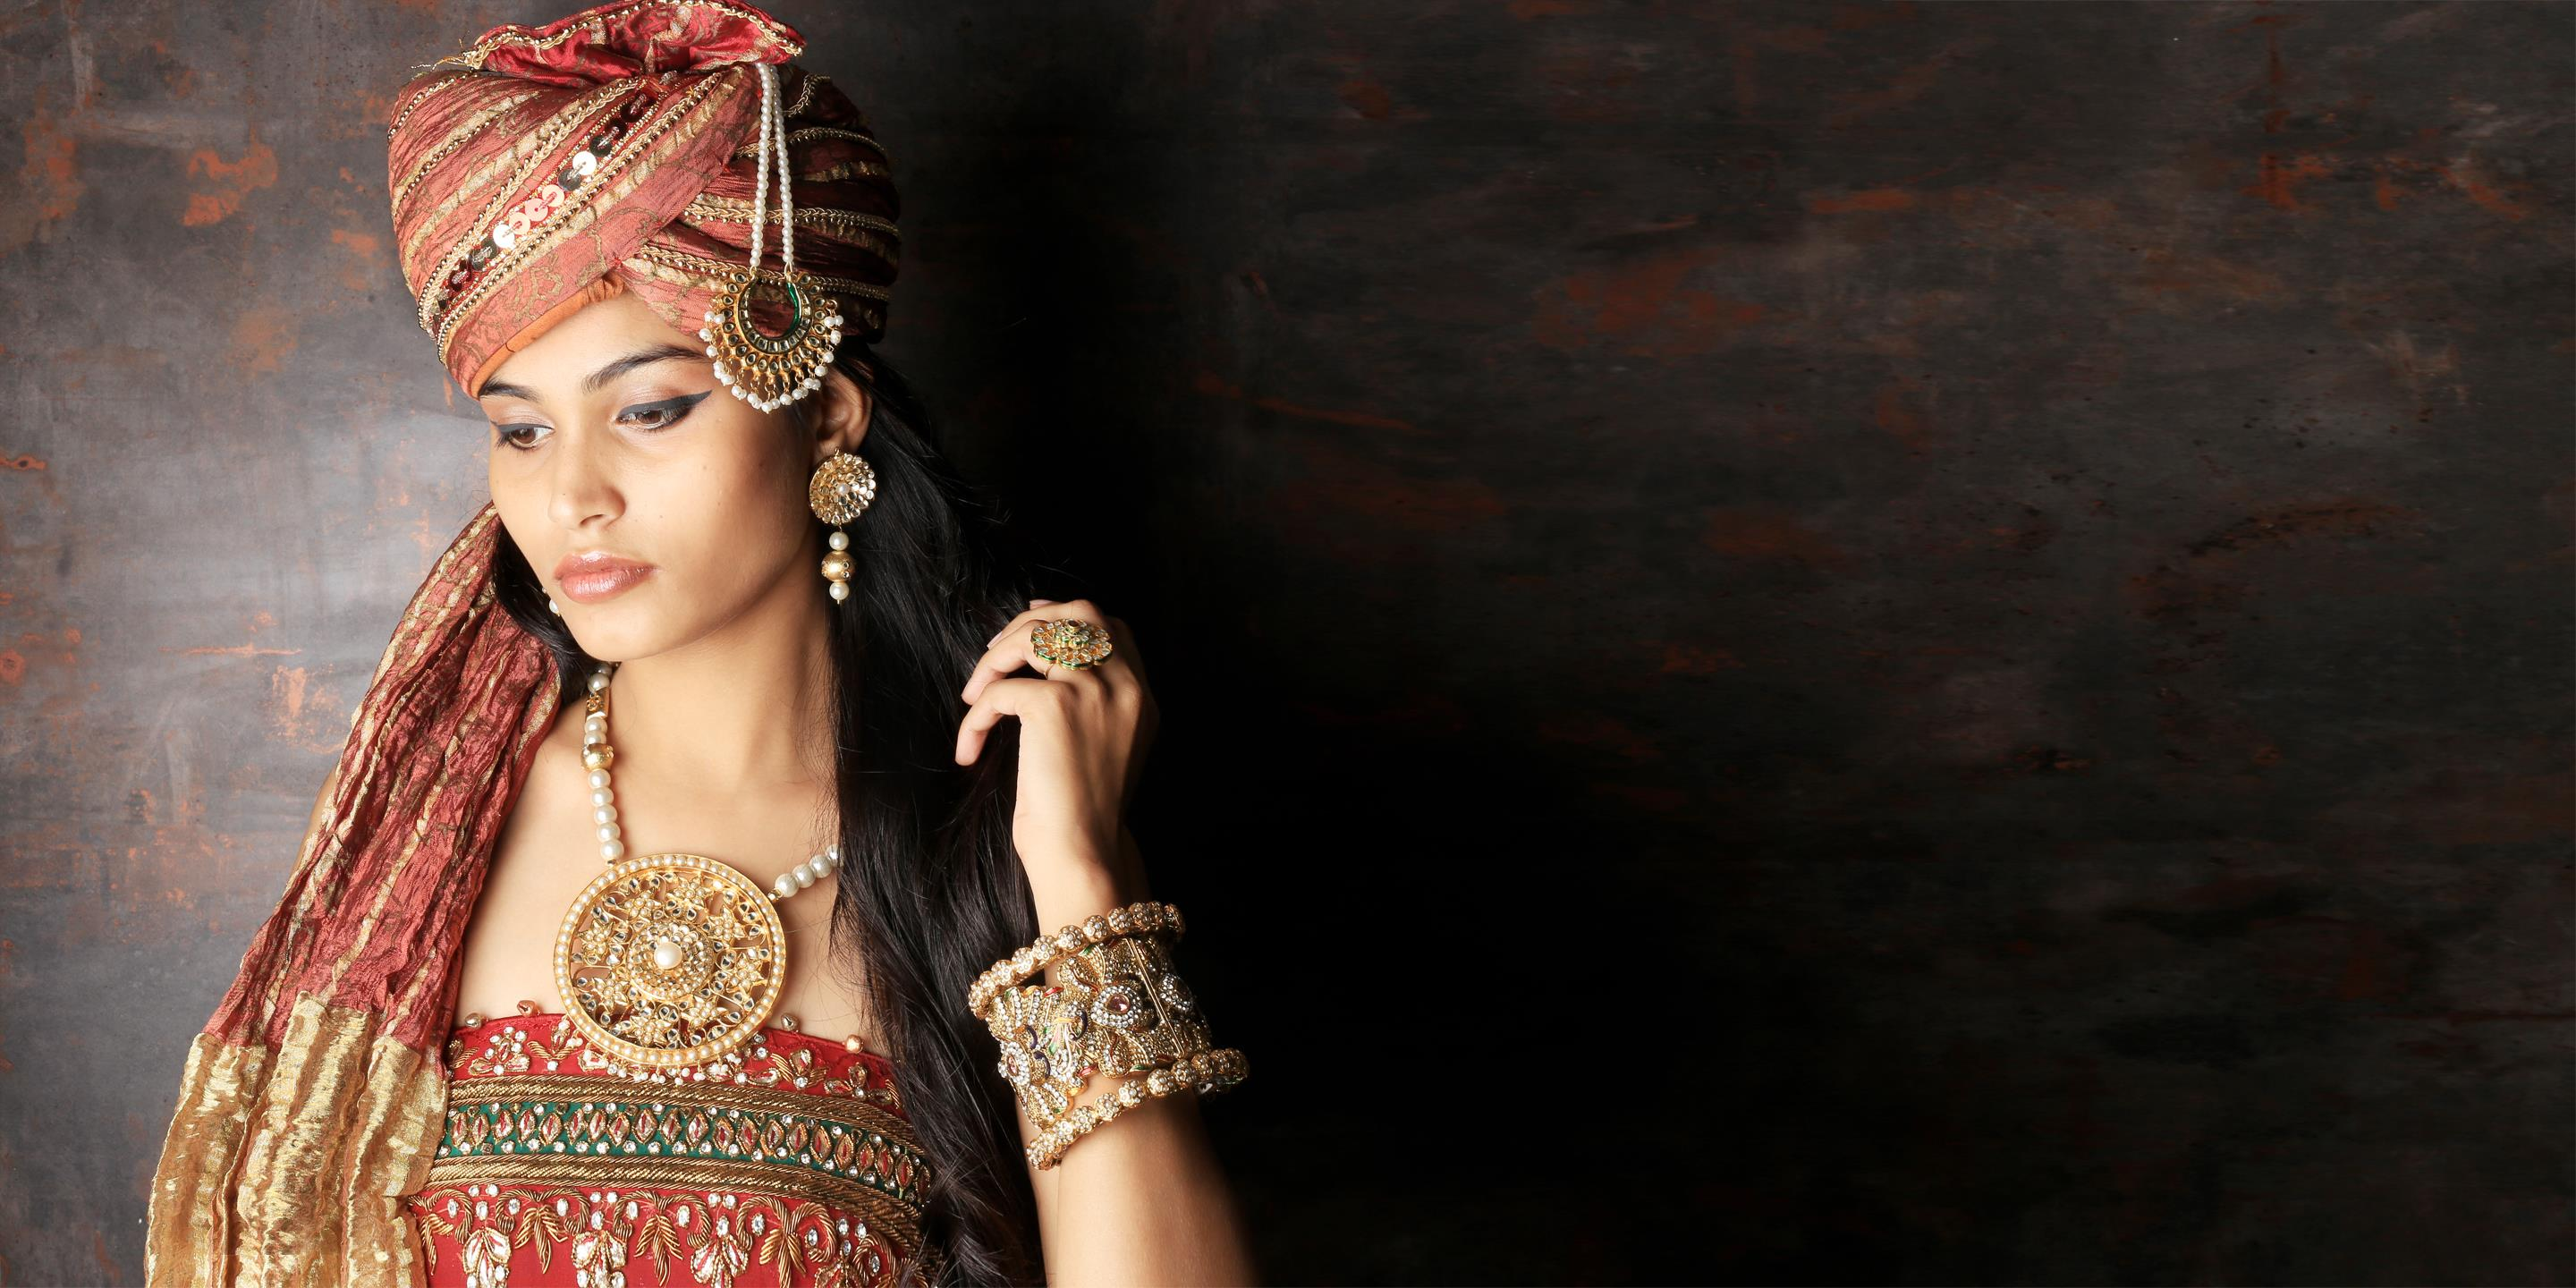 Indian Wedding Site Relaunch Celebration Sweepstakes: India Trend